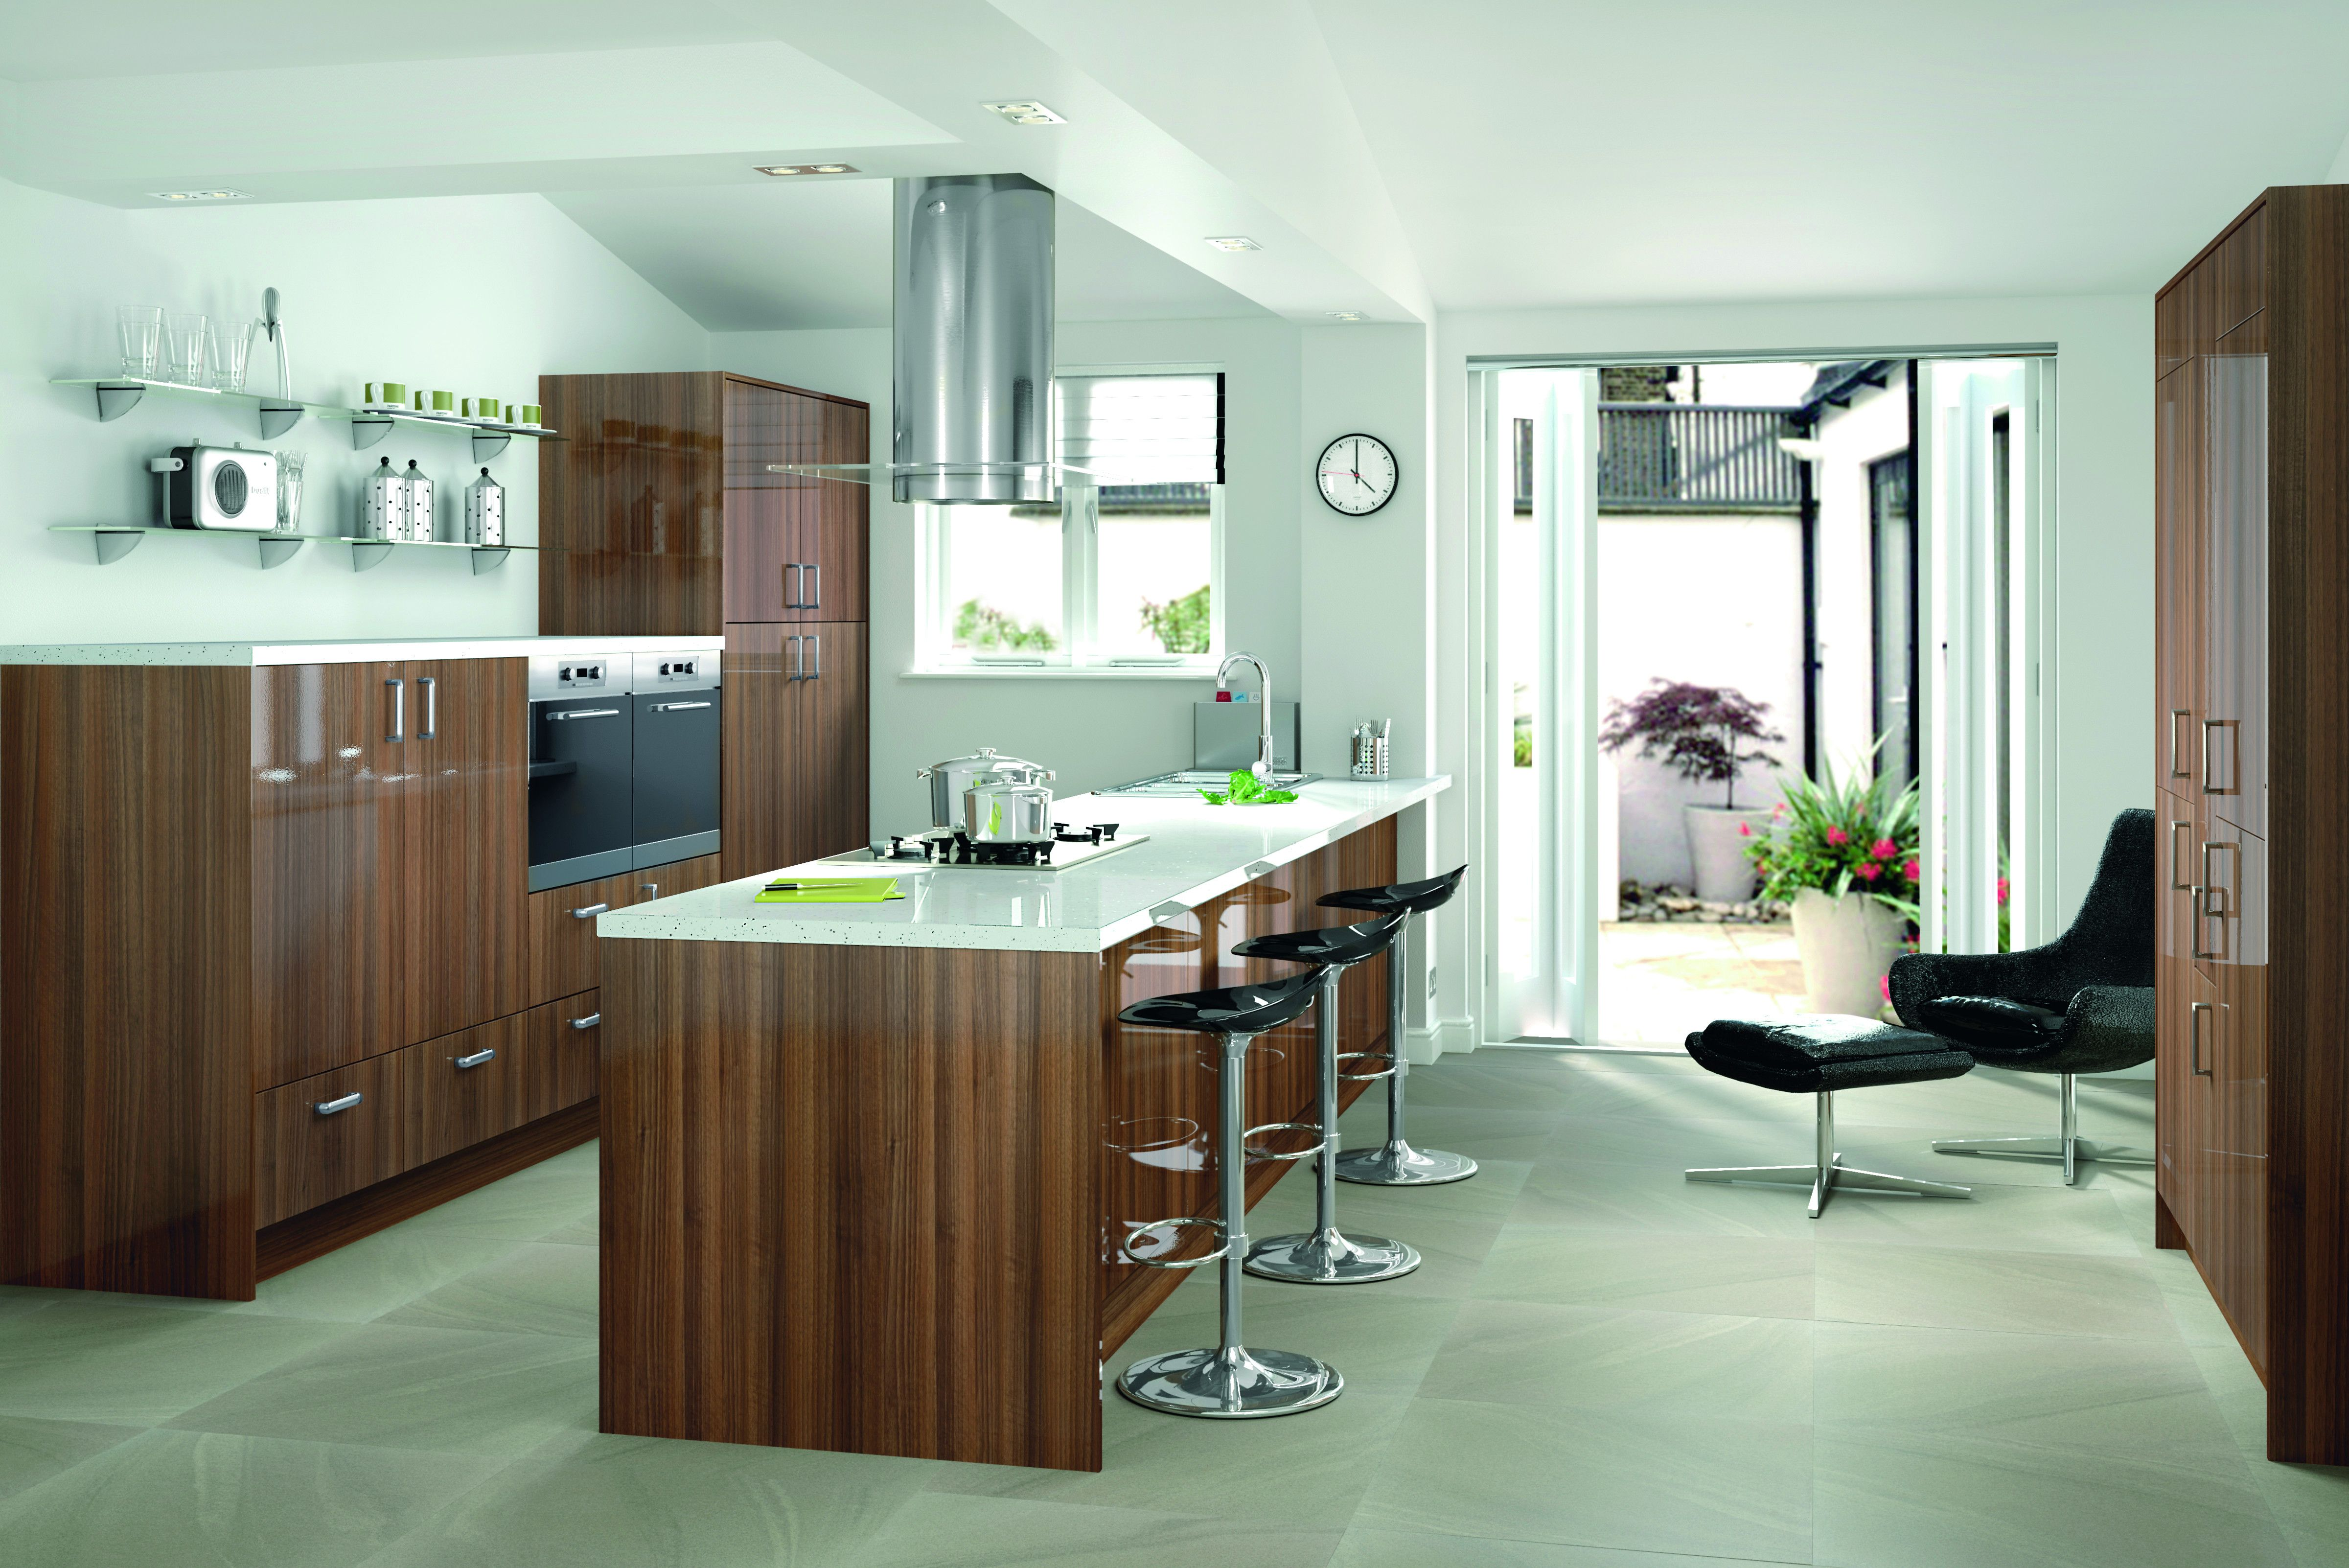 7 Essential tips for a perfect kitchen | KiTCHEN DESIGNS | Pinterest ...